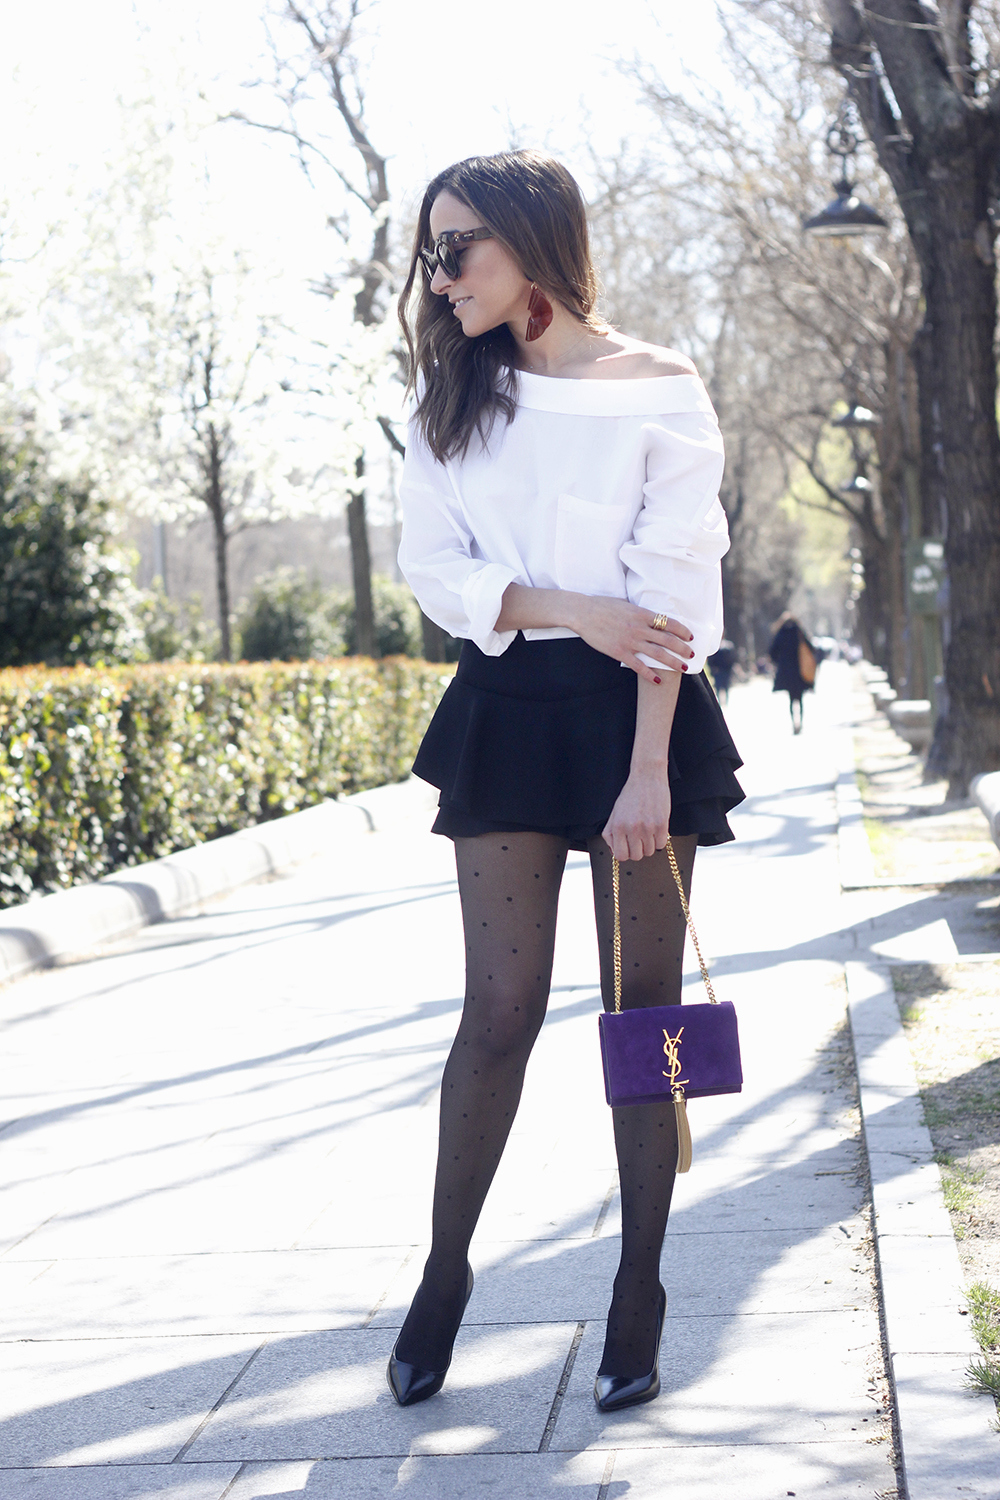 Ruffled shorts white shirt saint lauren bag céline outfit style03